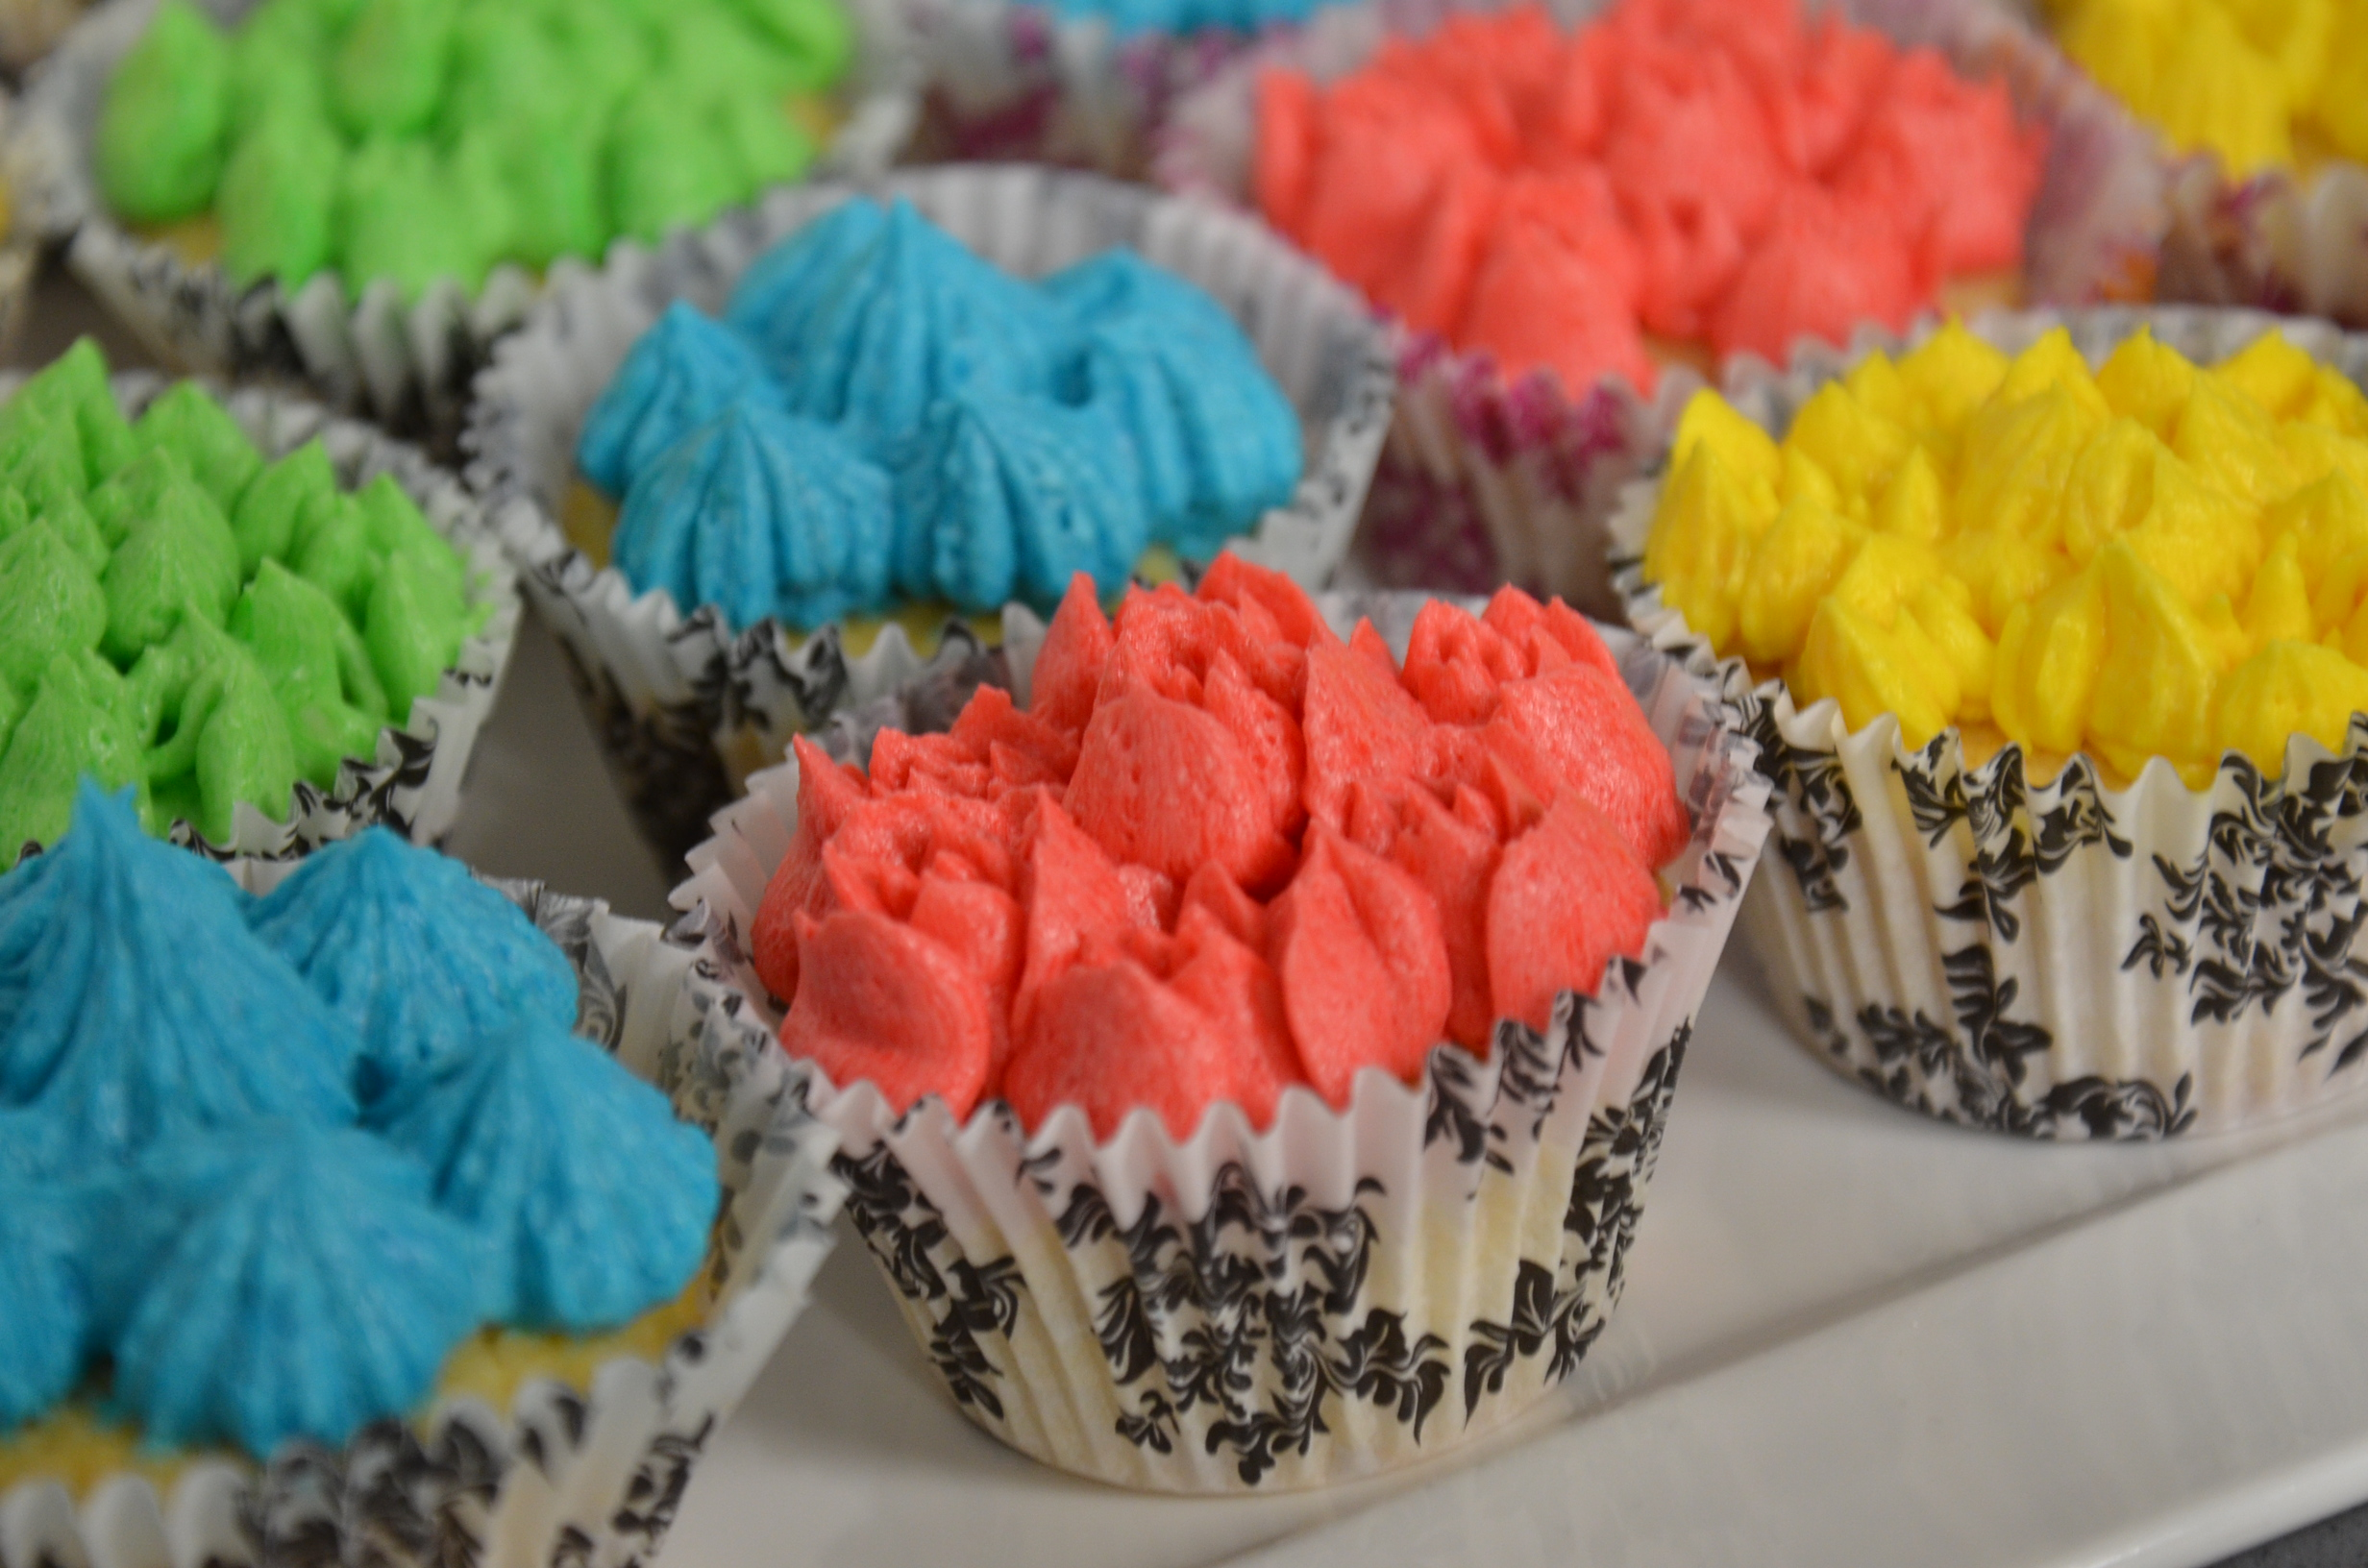 Prepare Treat for kids at home   Cupcakes with butter cream